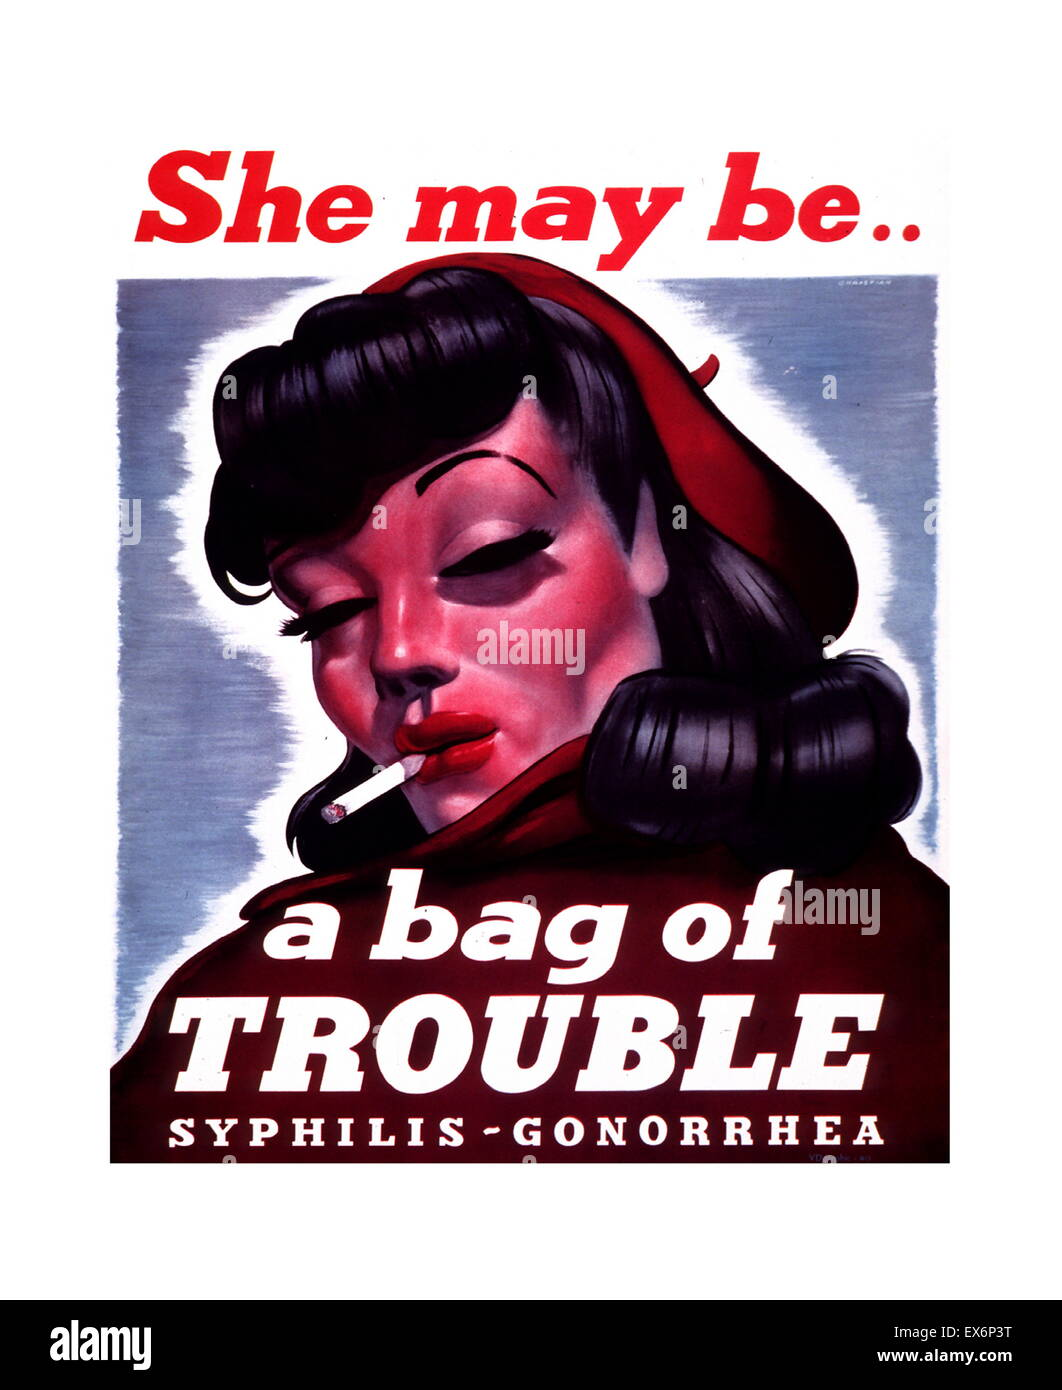 She May Be... A Bag of Trouble 1940 american Public health poster to raise awareness venereal disease - Stock Image